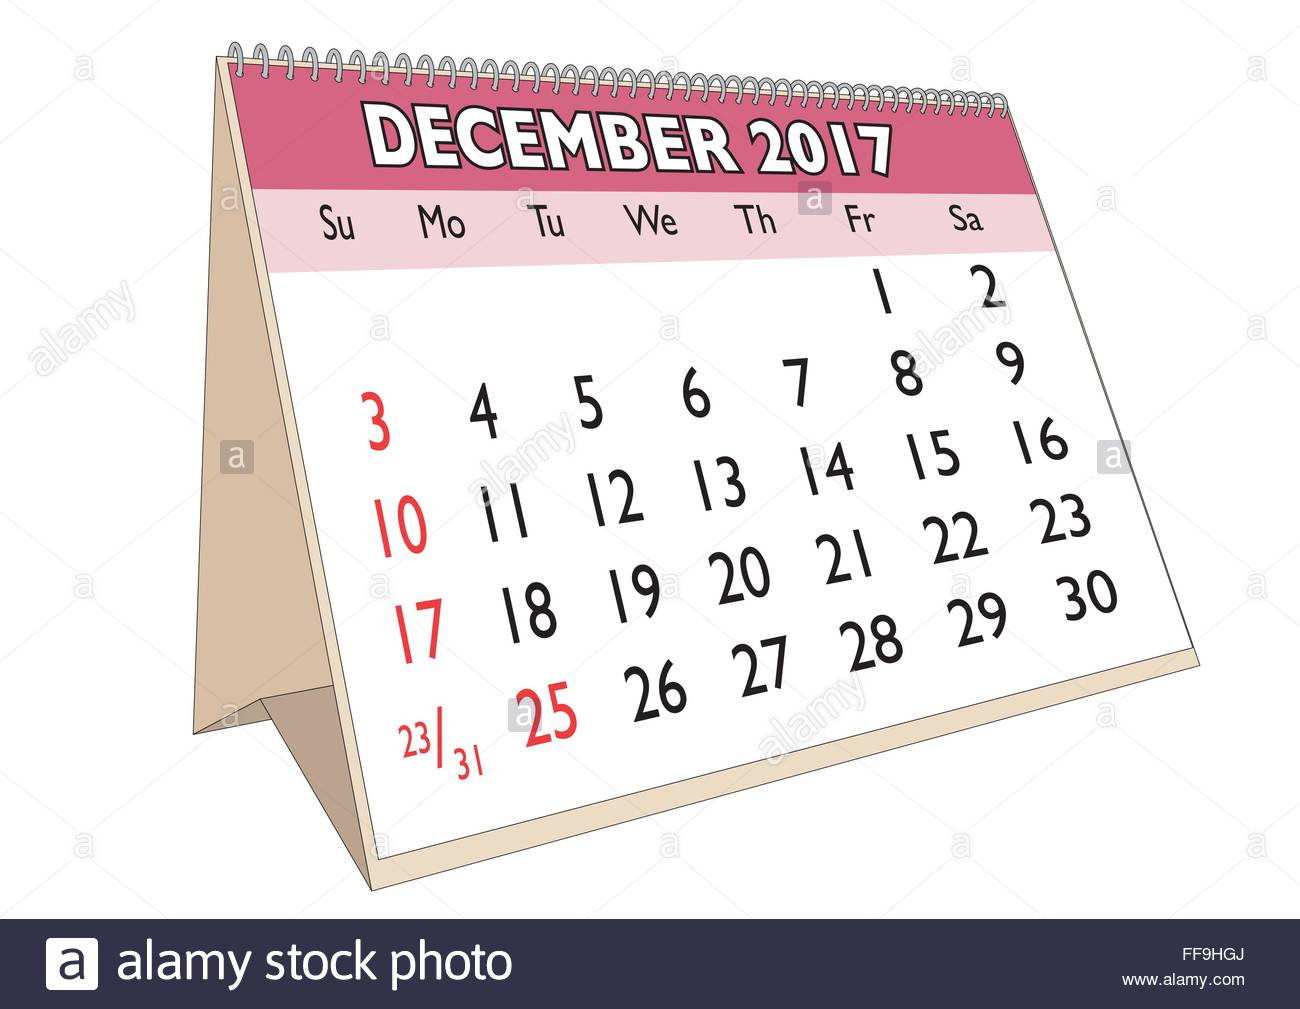 December Month In An English Calendar For Year 2017 With